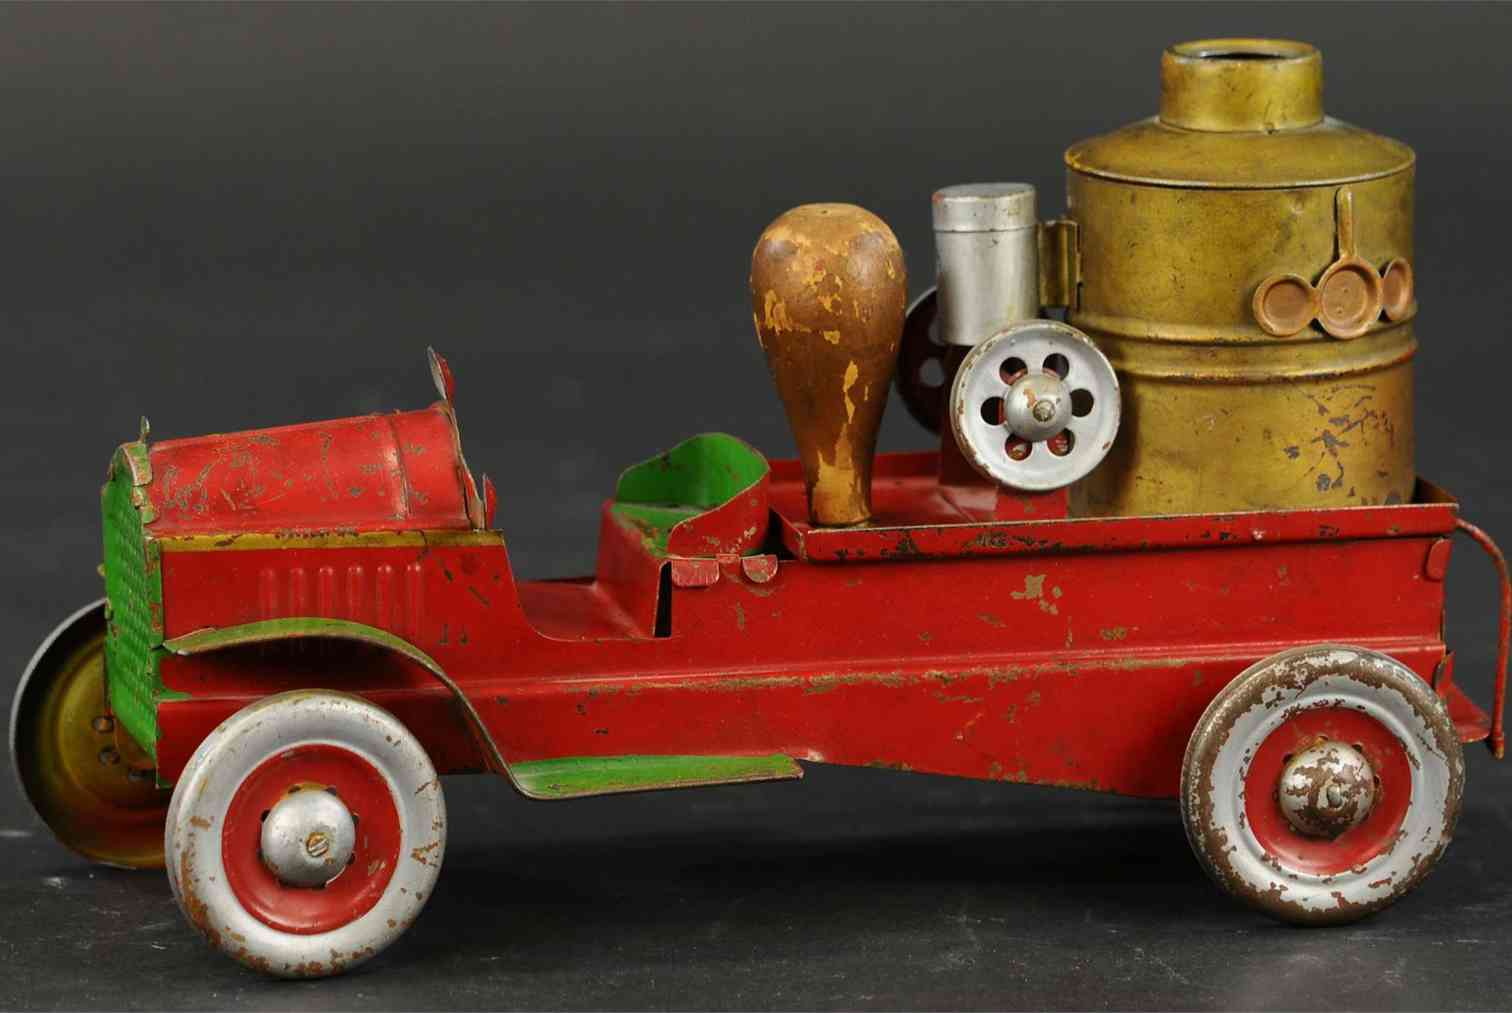 dayton toy fire pumper truck pressed steel with friction drive